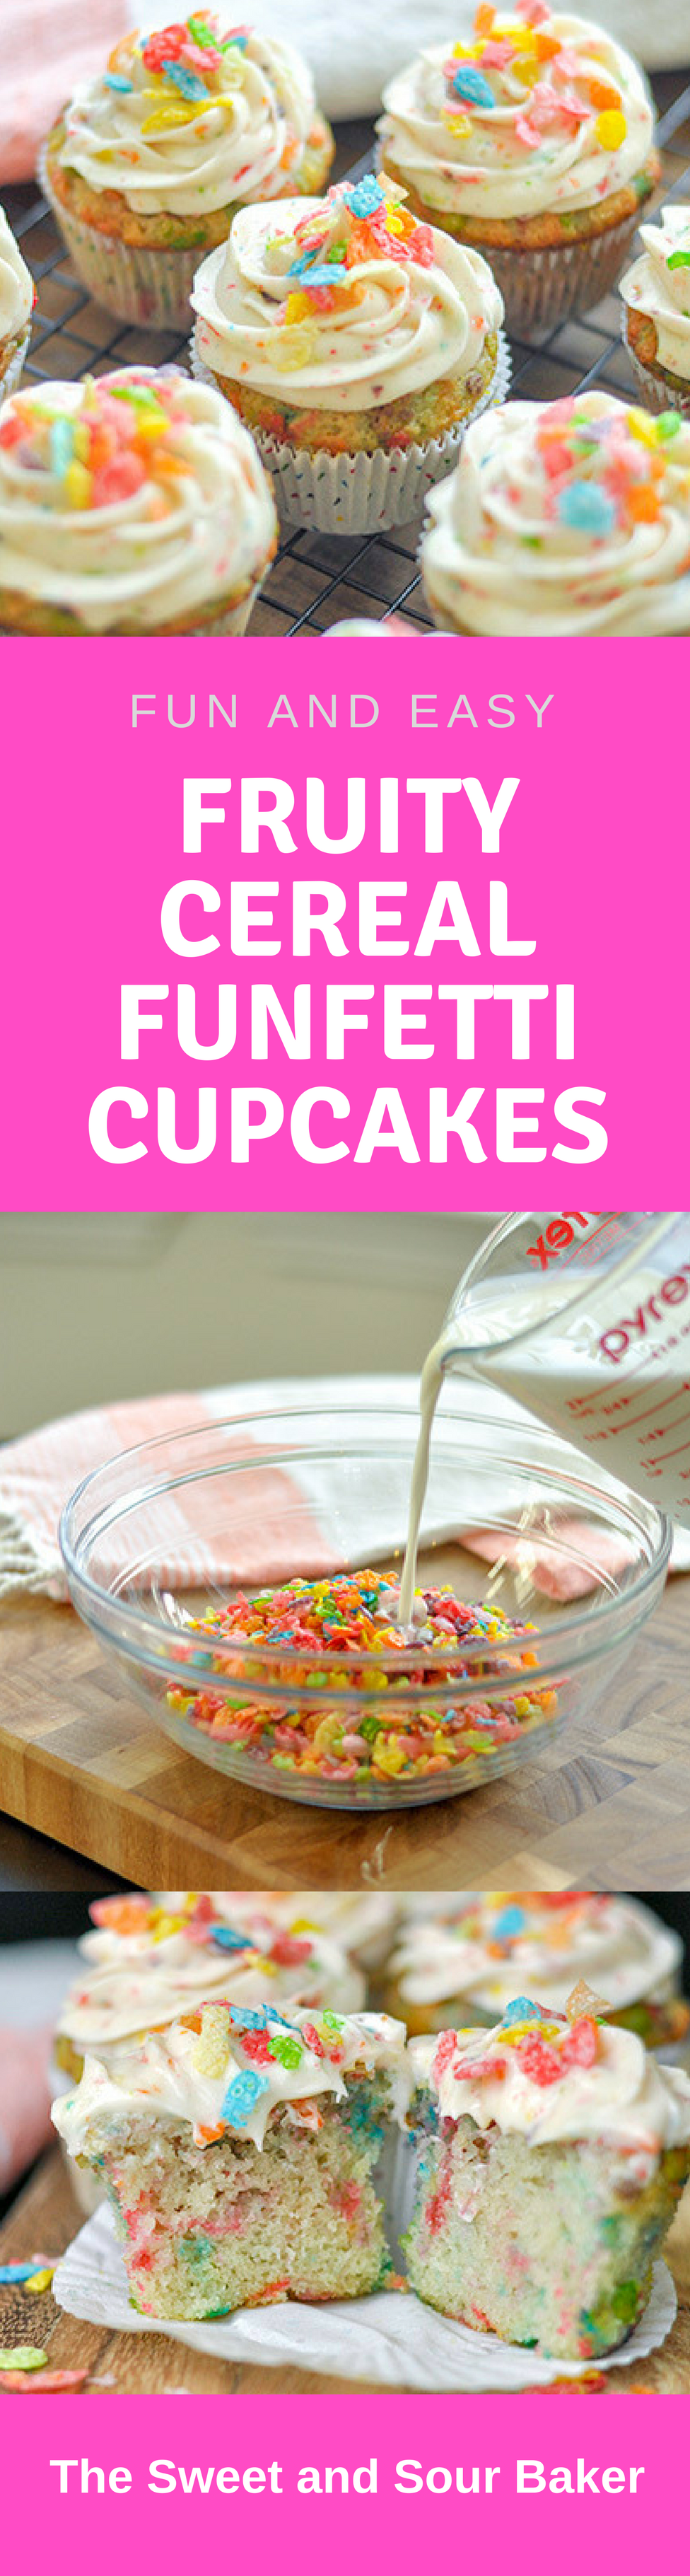 Fruity Cereal Funfetti Cupcakes